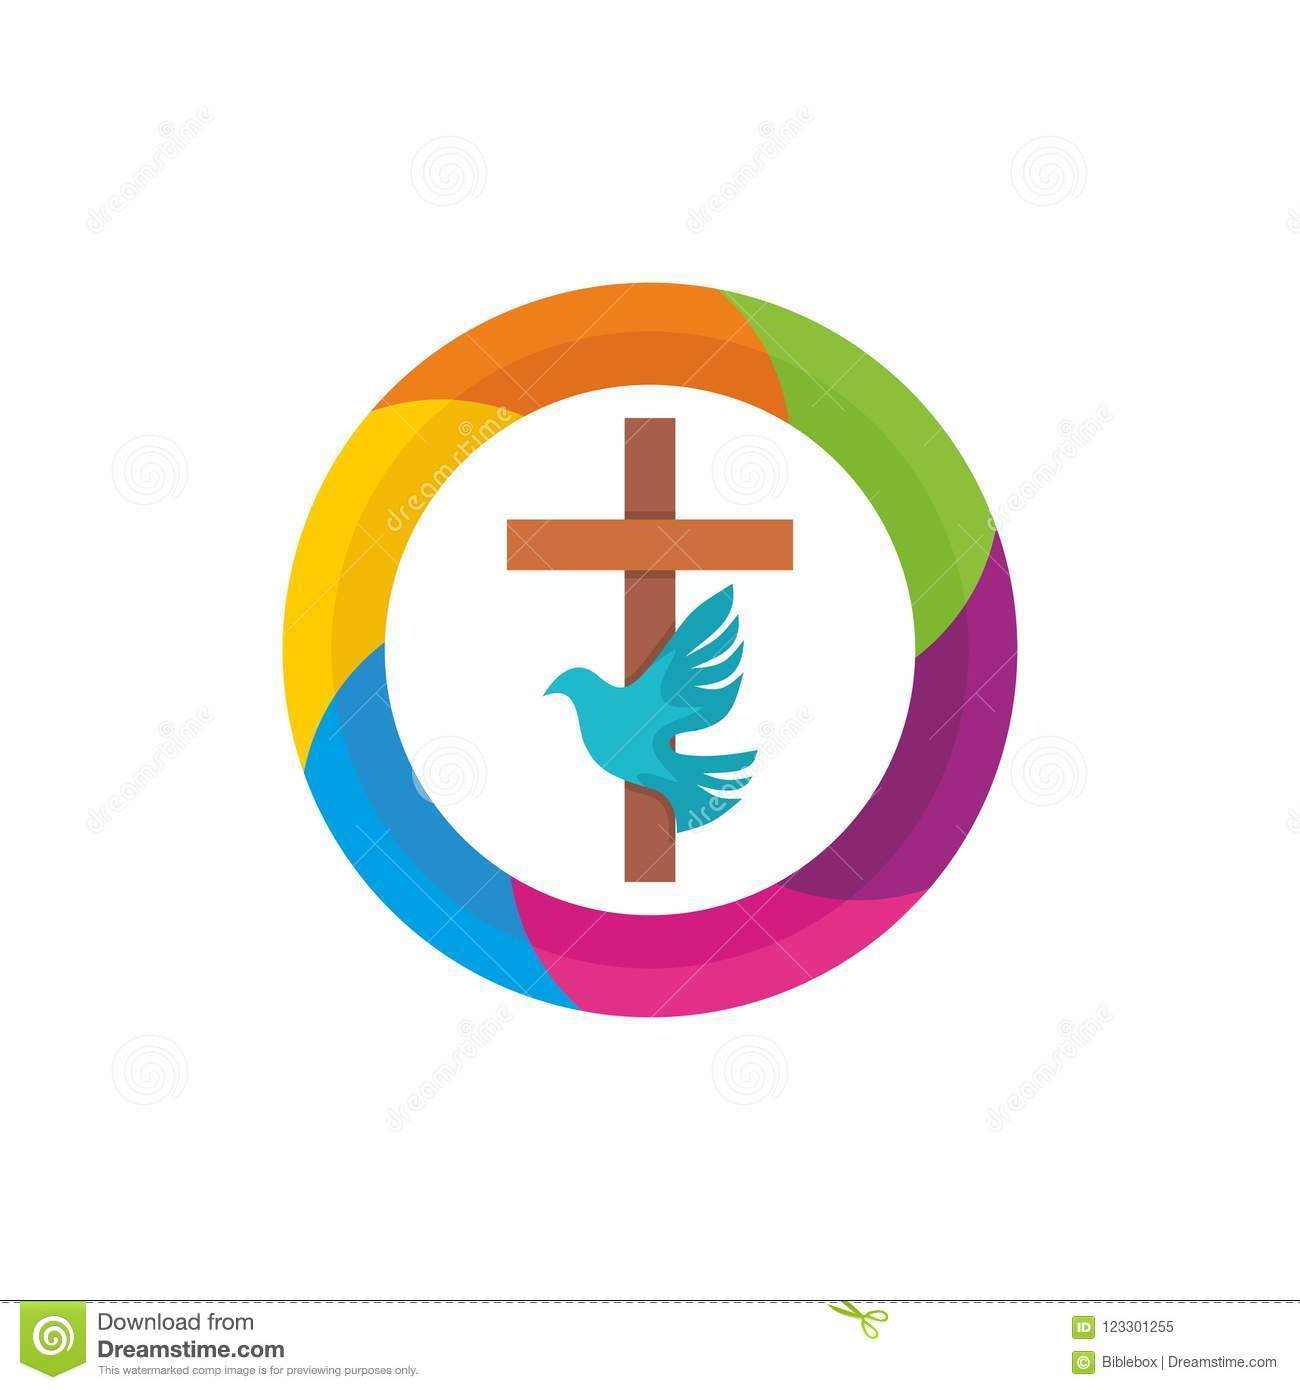 Church Logo Christian Symbols The Cross Of Jesus The Holy Spirit